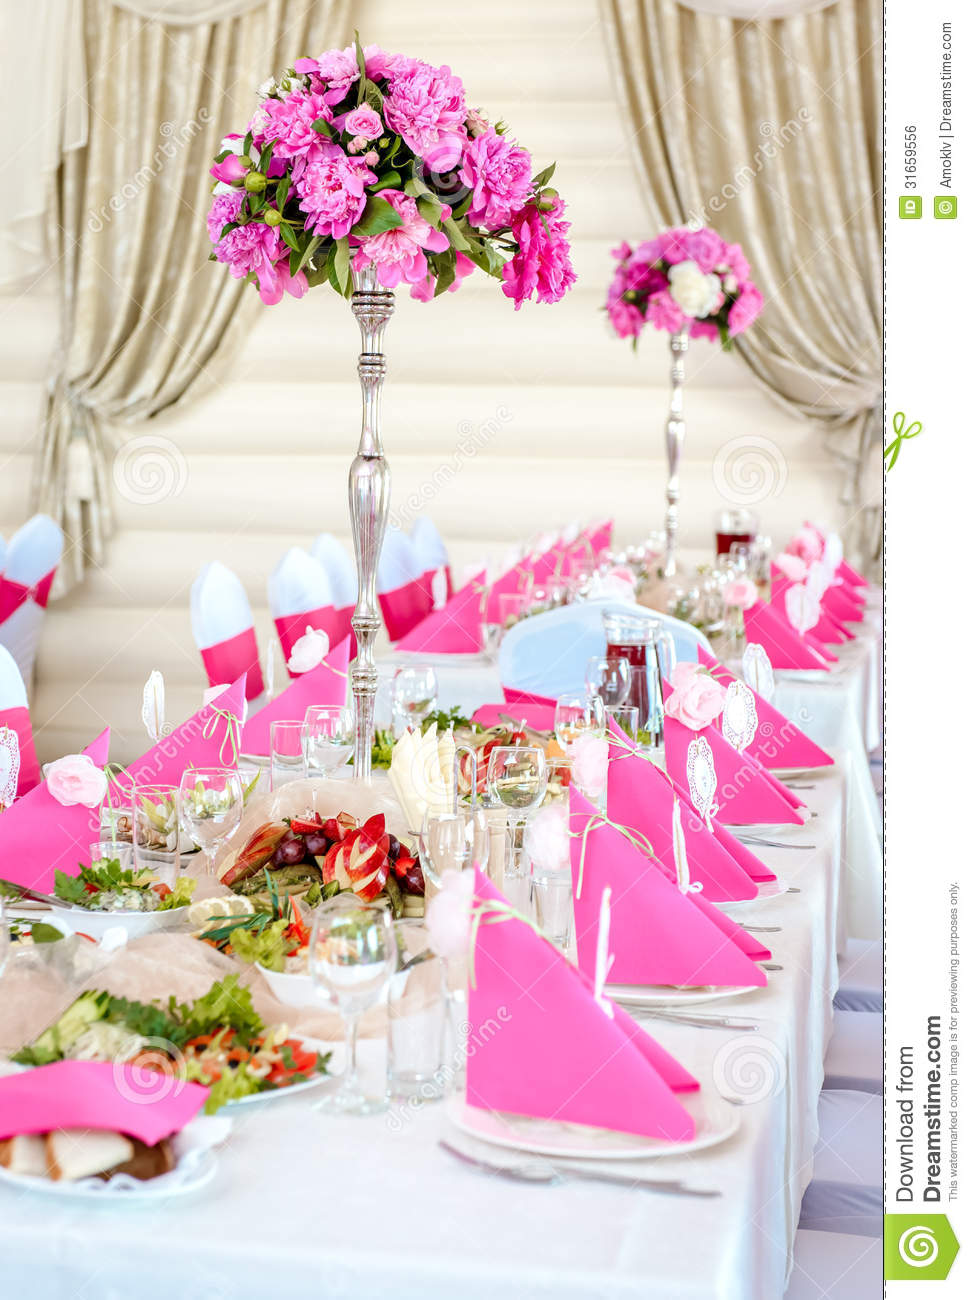 Wedding Table Decorations stock photo. Image of dinner - 31659556